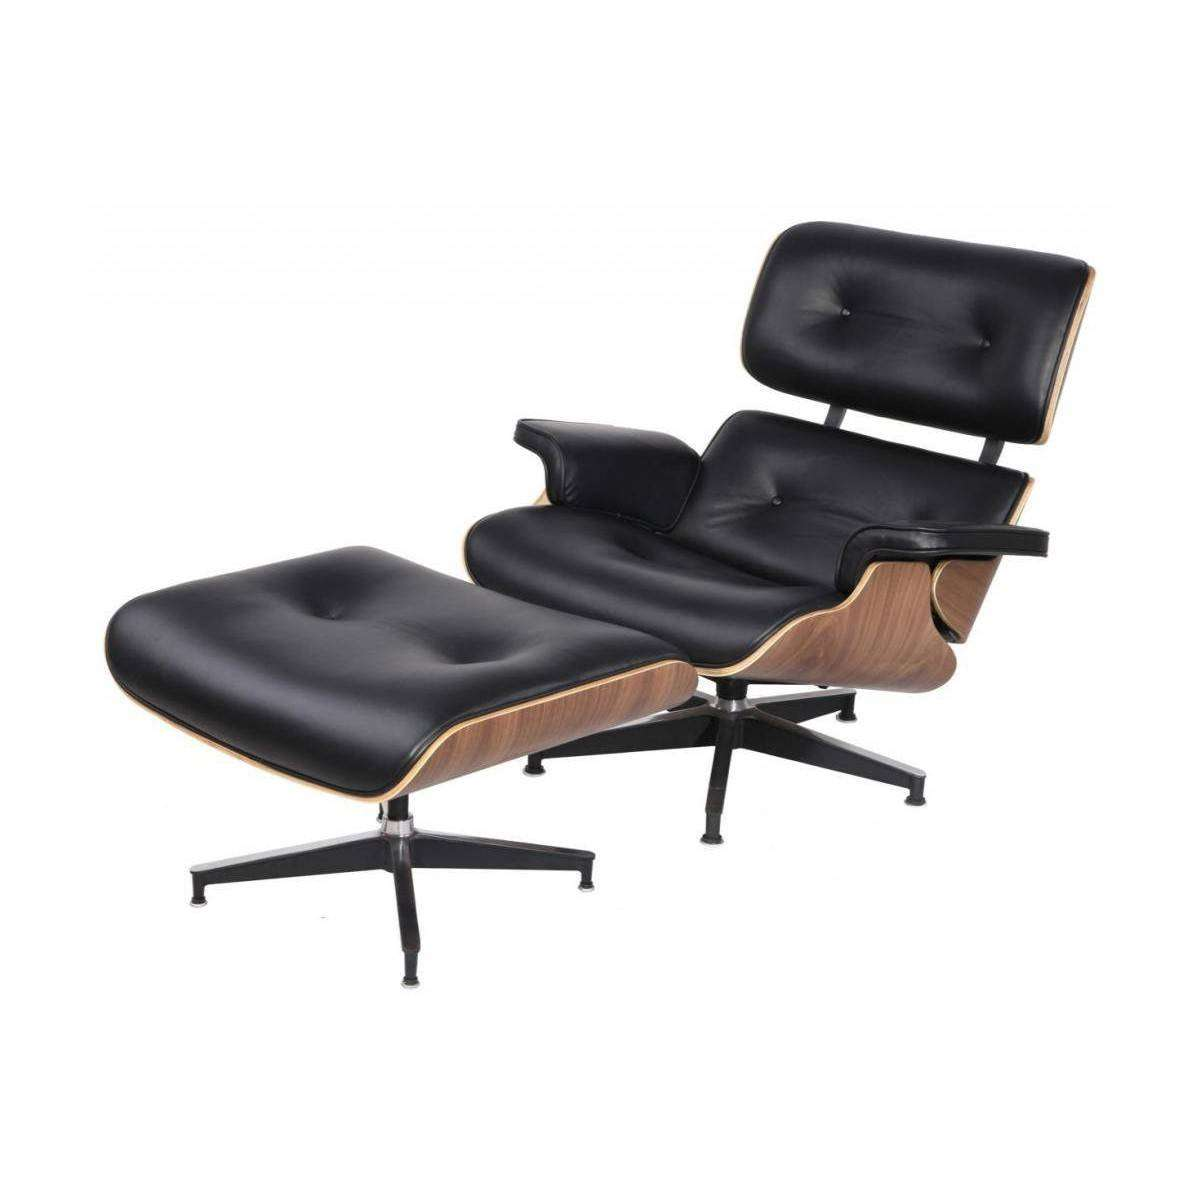 Eames Lounge Chair Amp Ottoman Replica Modterior Usa